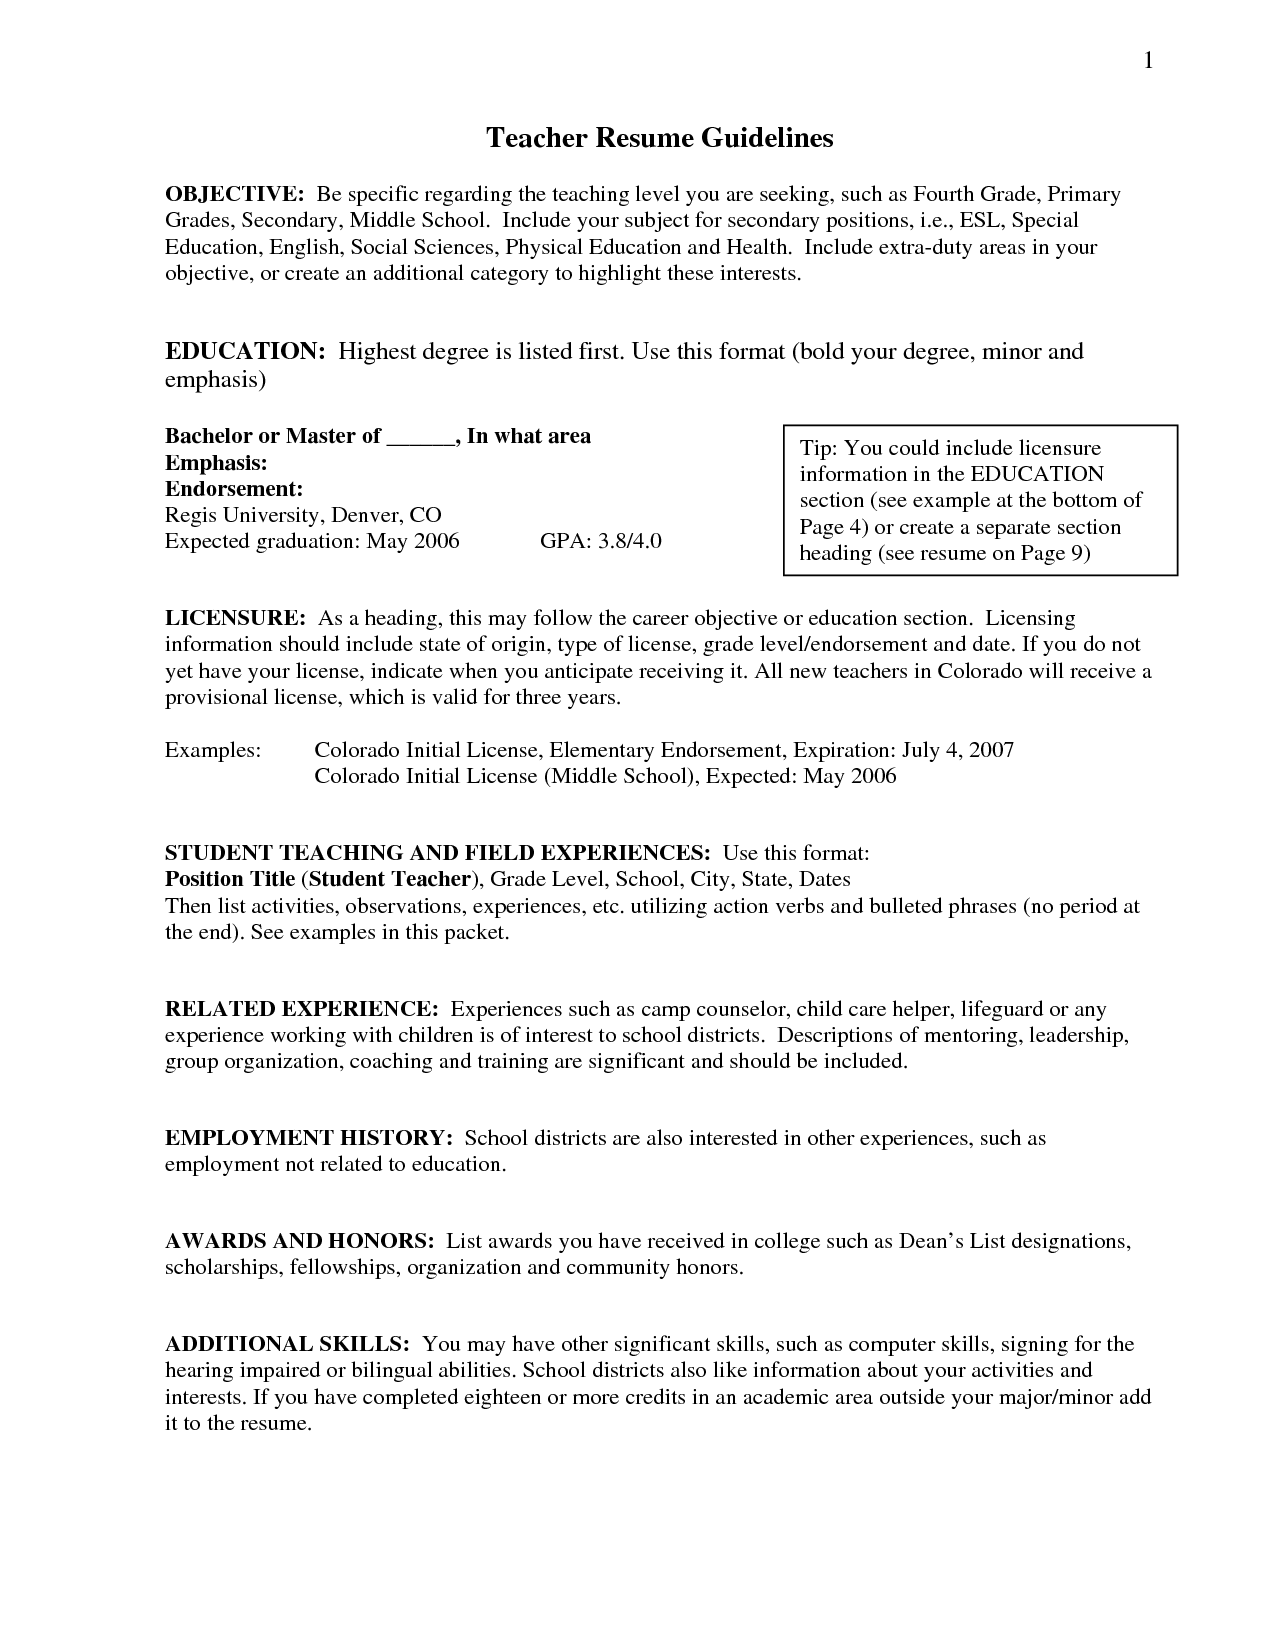 Resume Objective Statement For Teacher - http://www.resumecareer ...